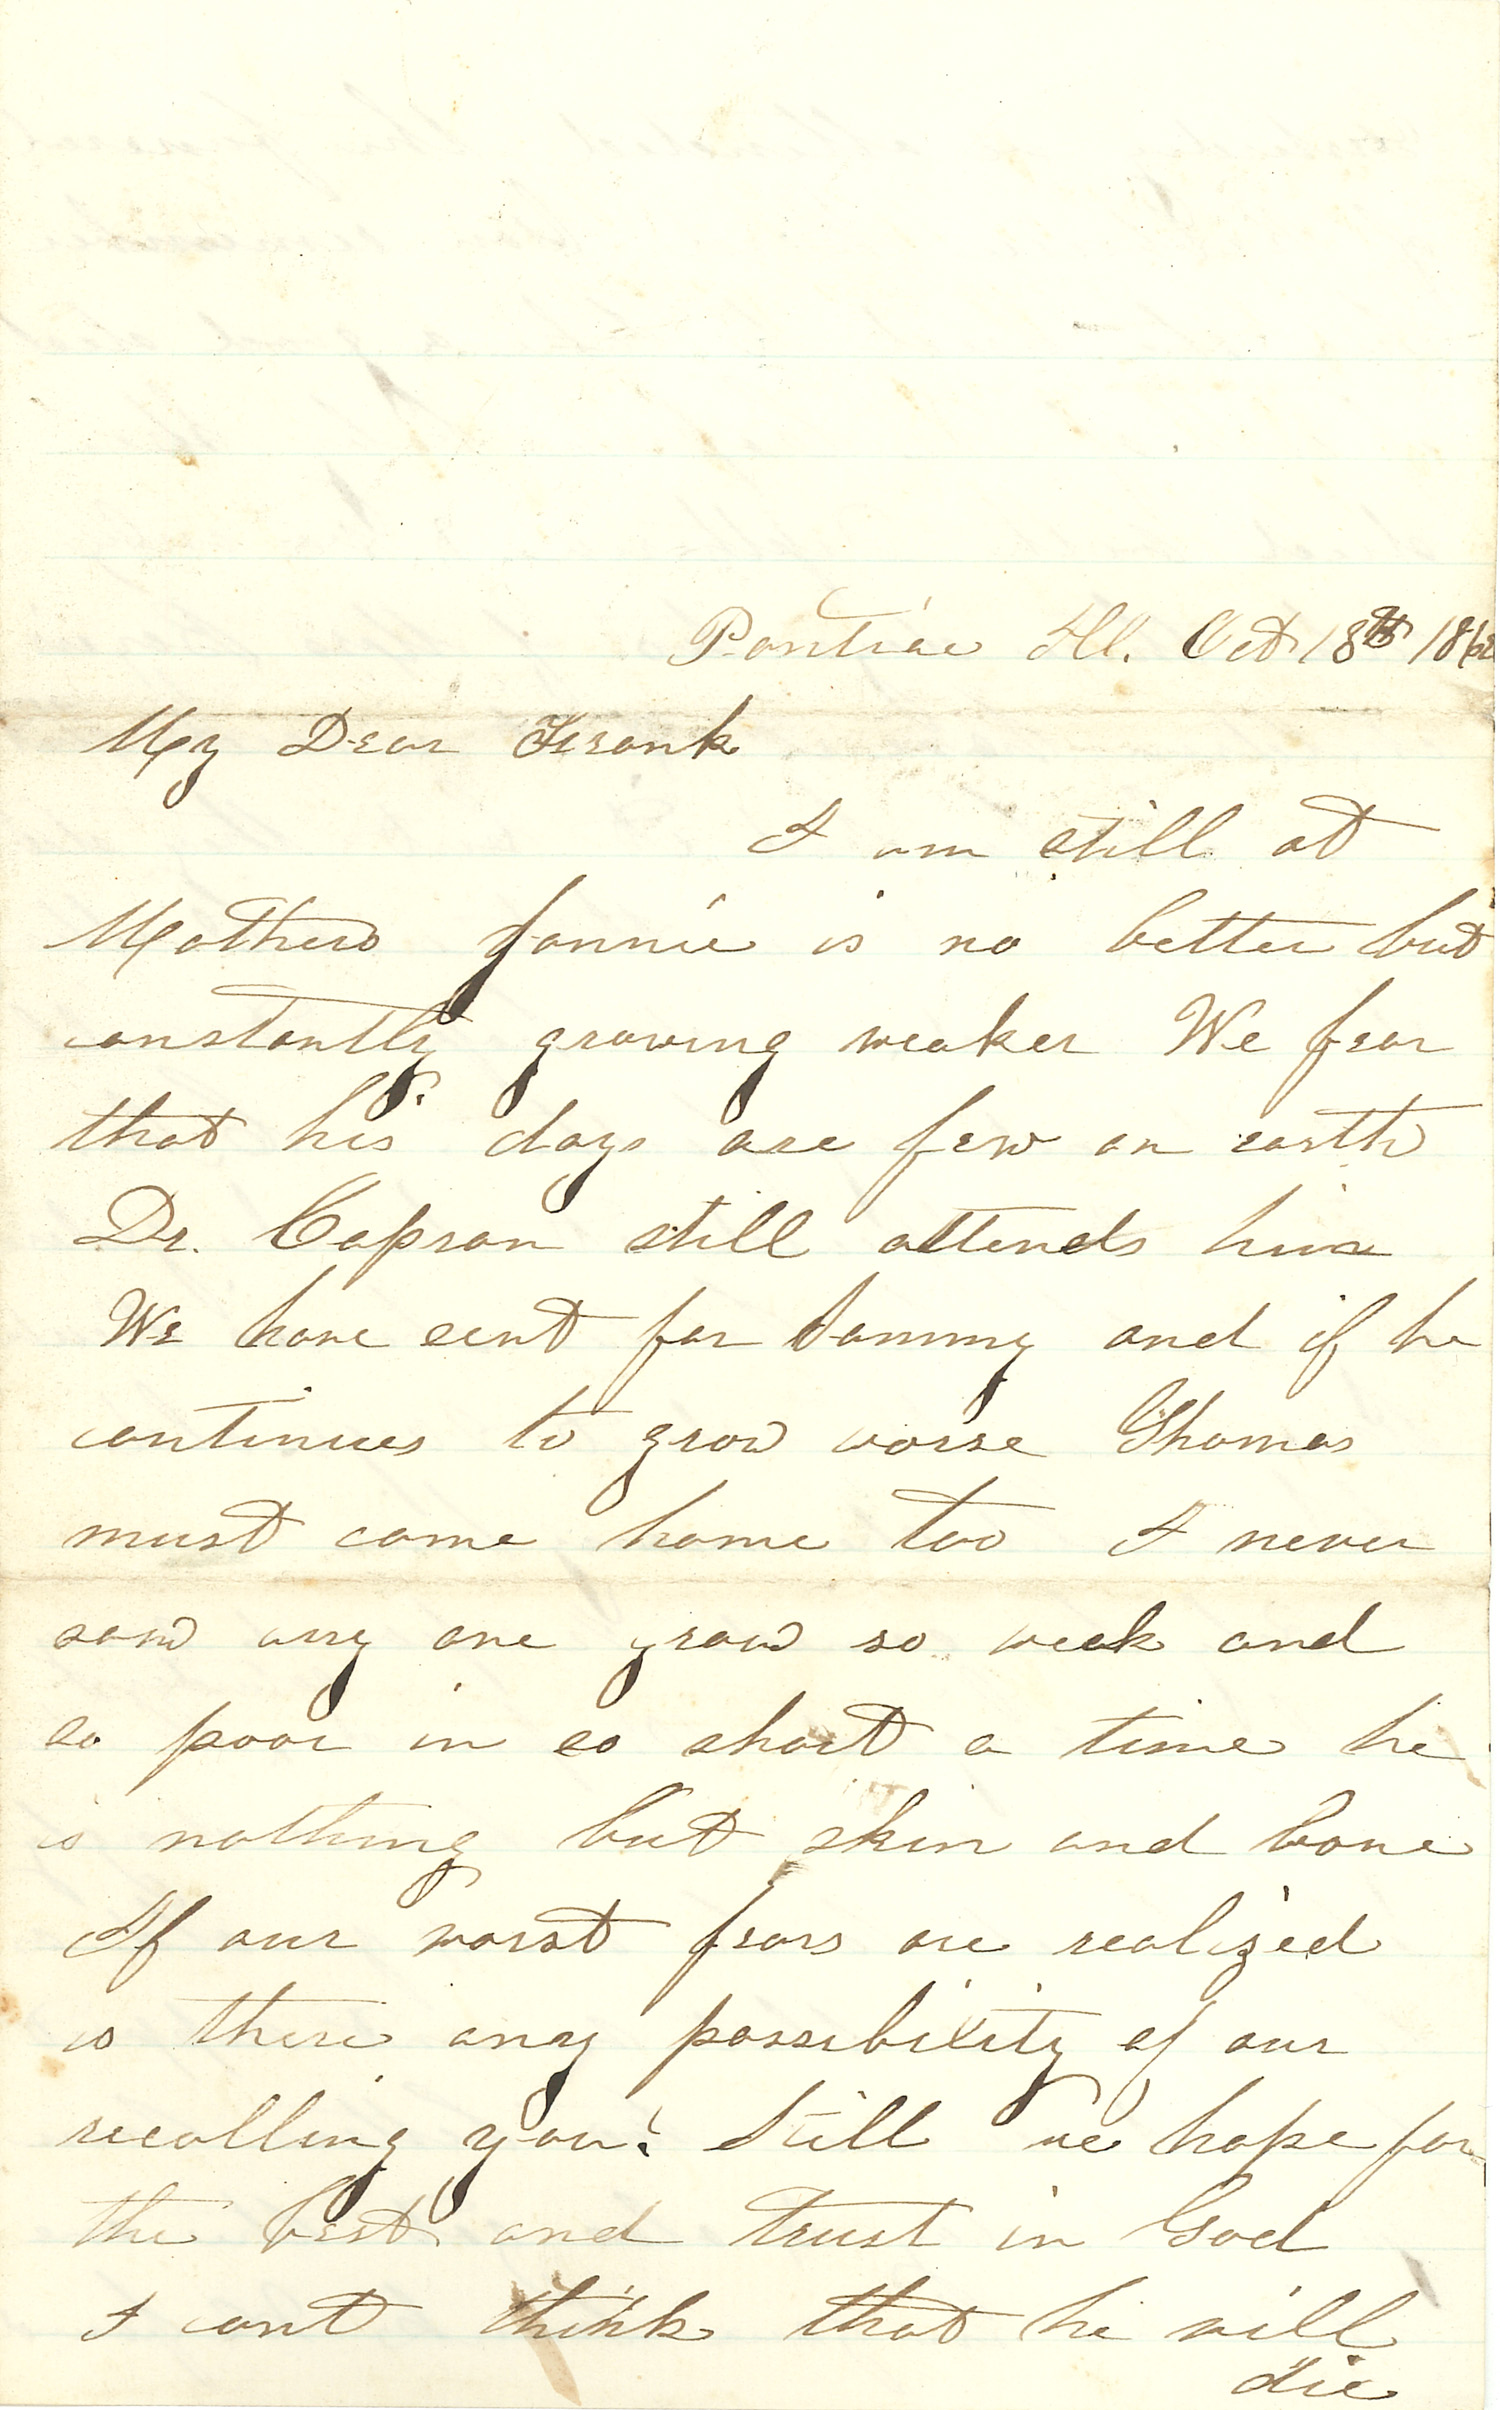 Joseph Culver Letter, October 18, 1862, Page 1